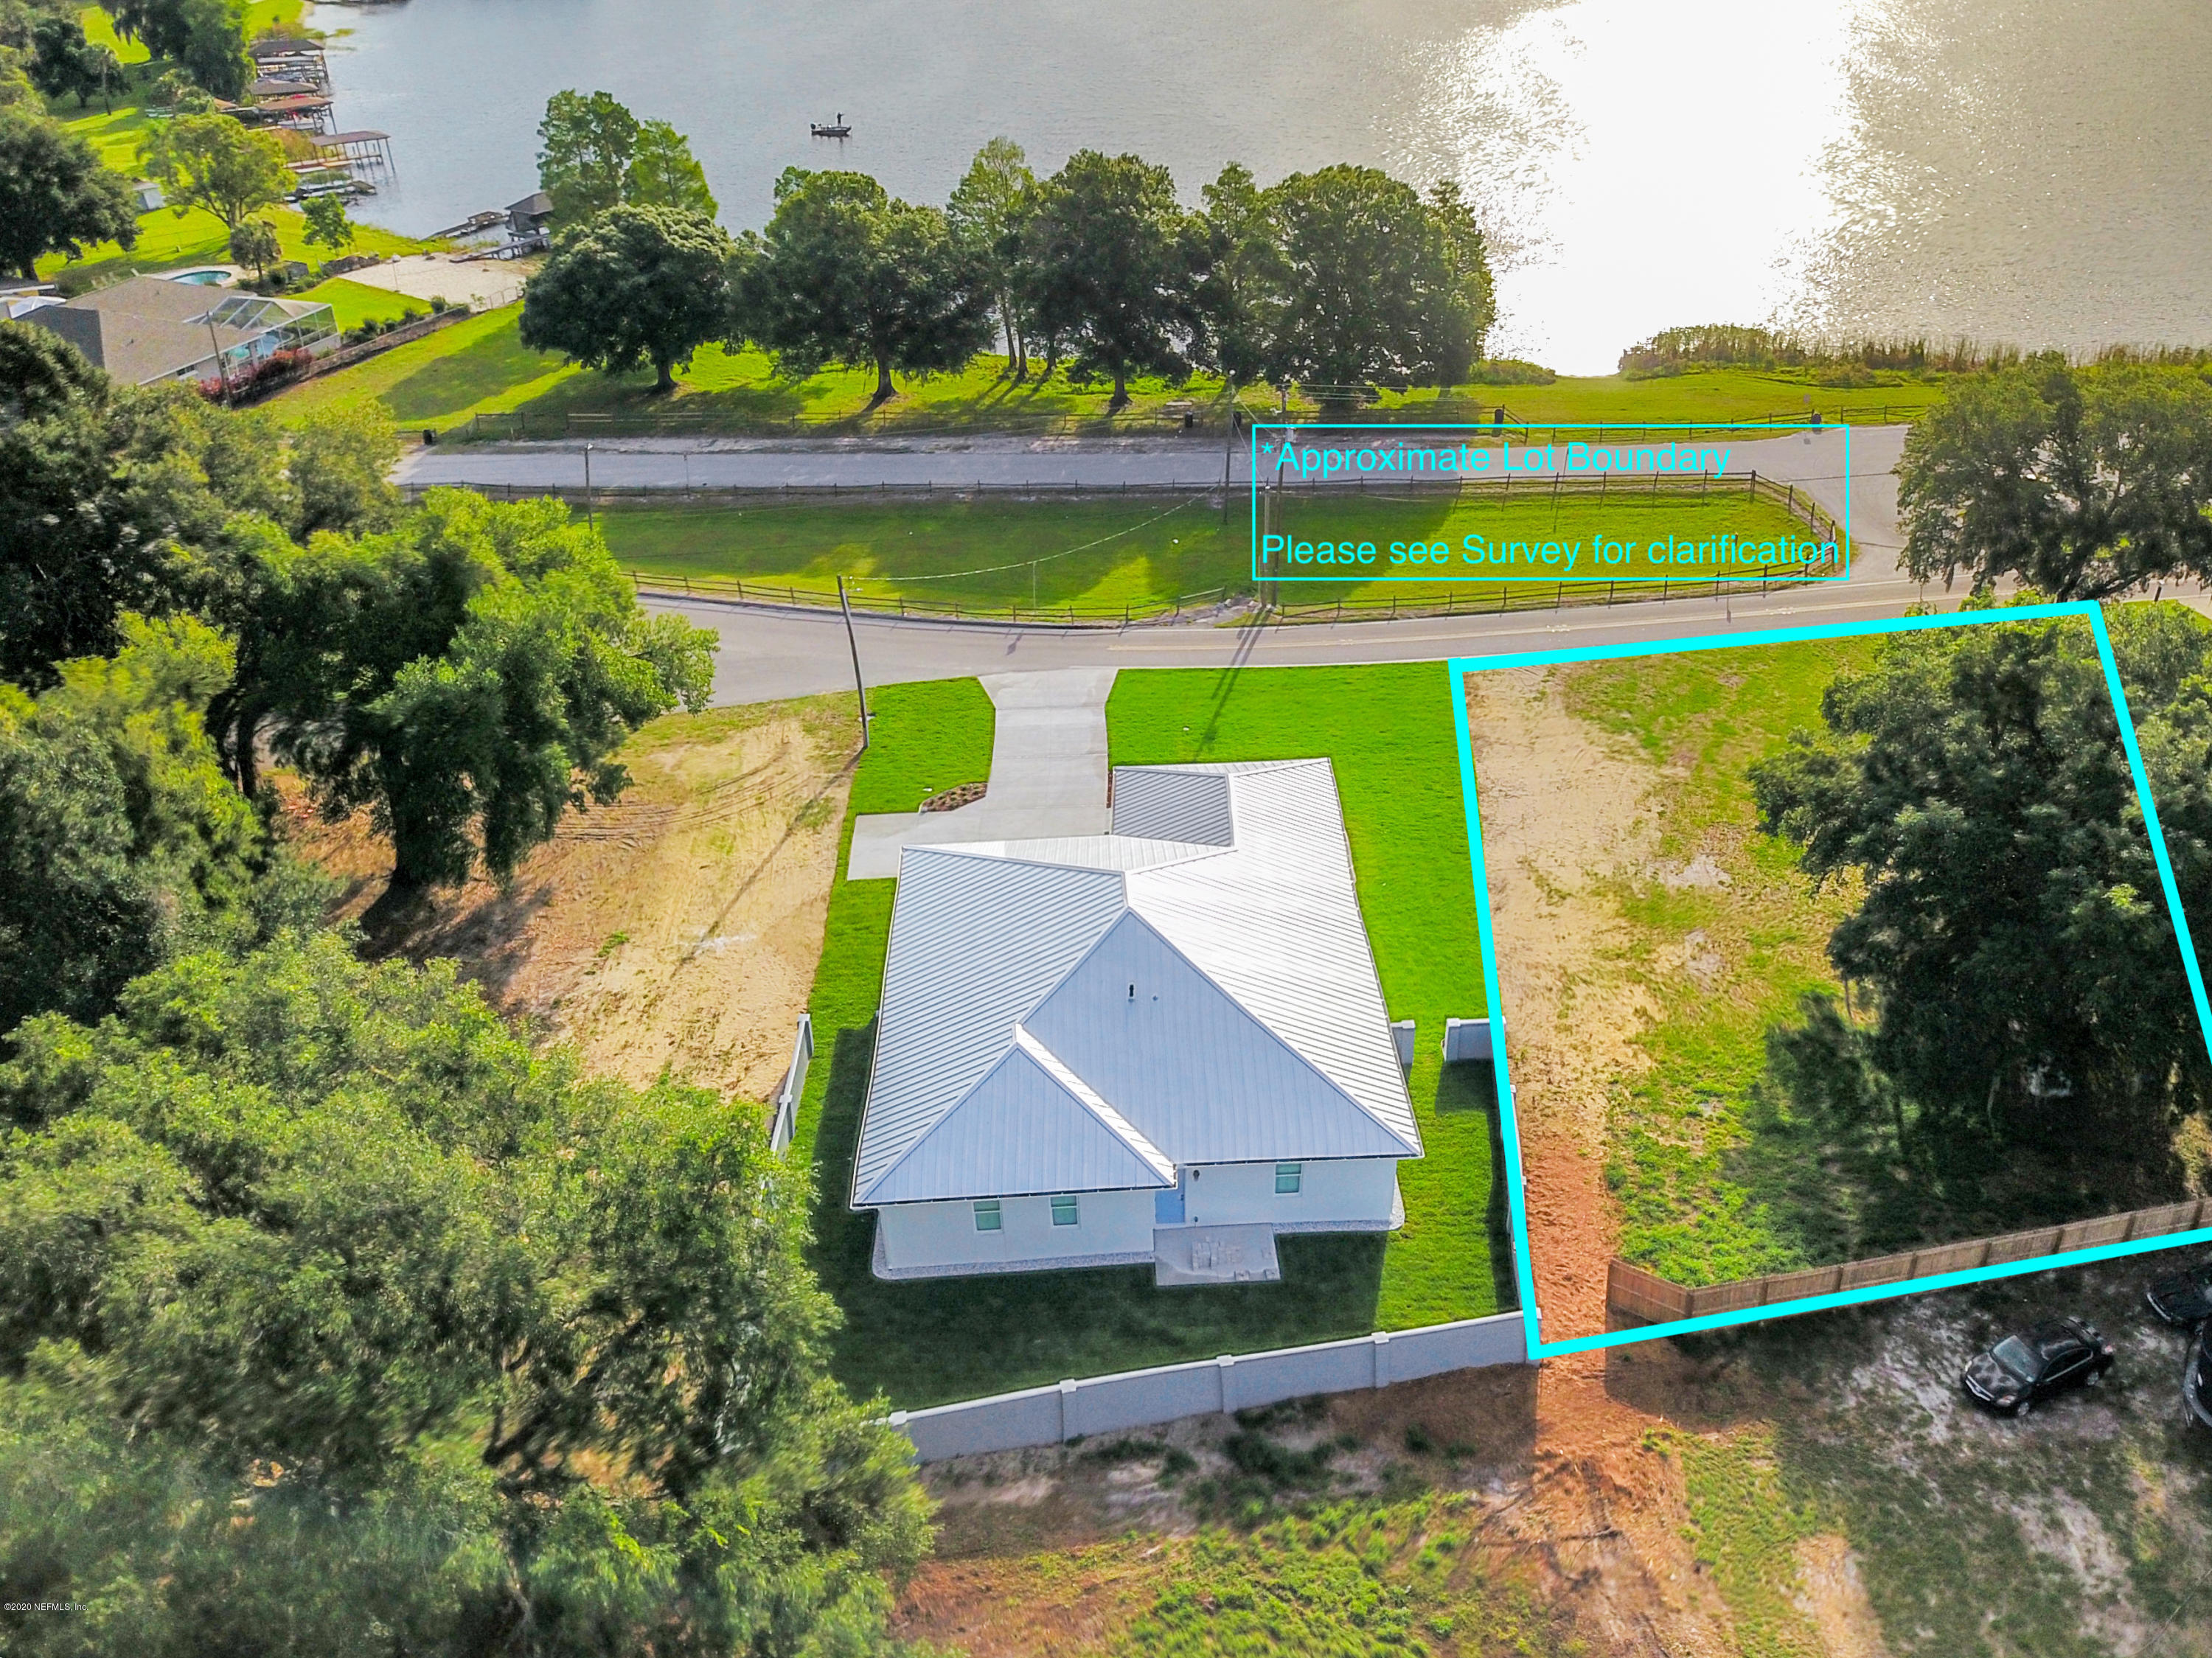 0 LAKE SUMMIT, WINTER HAVEN, FLORIDA 33884, 3 Bedrooms Bedrooms, ,2 BathroomsBathrooms,Residential,For sale,LAKE SUMMIT,1055711